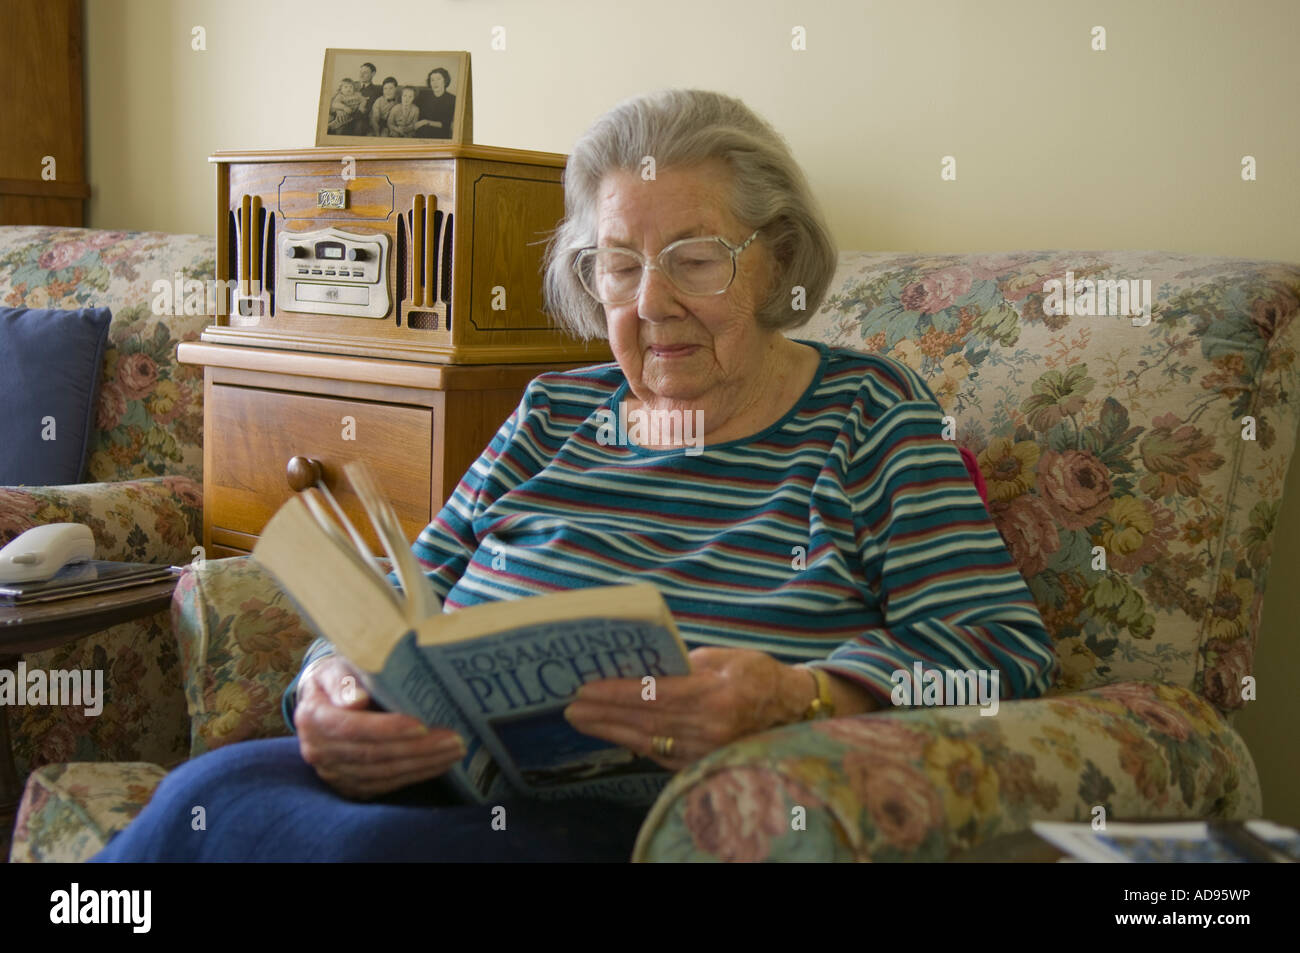 Elderly lady reading - Stock Image